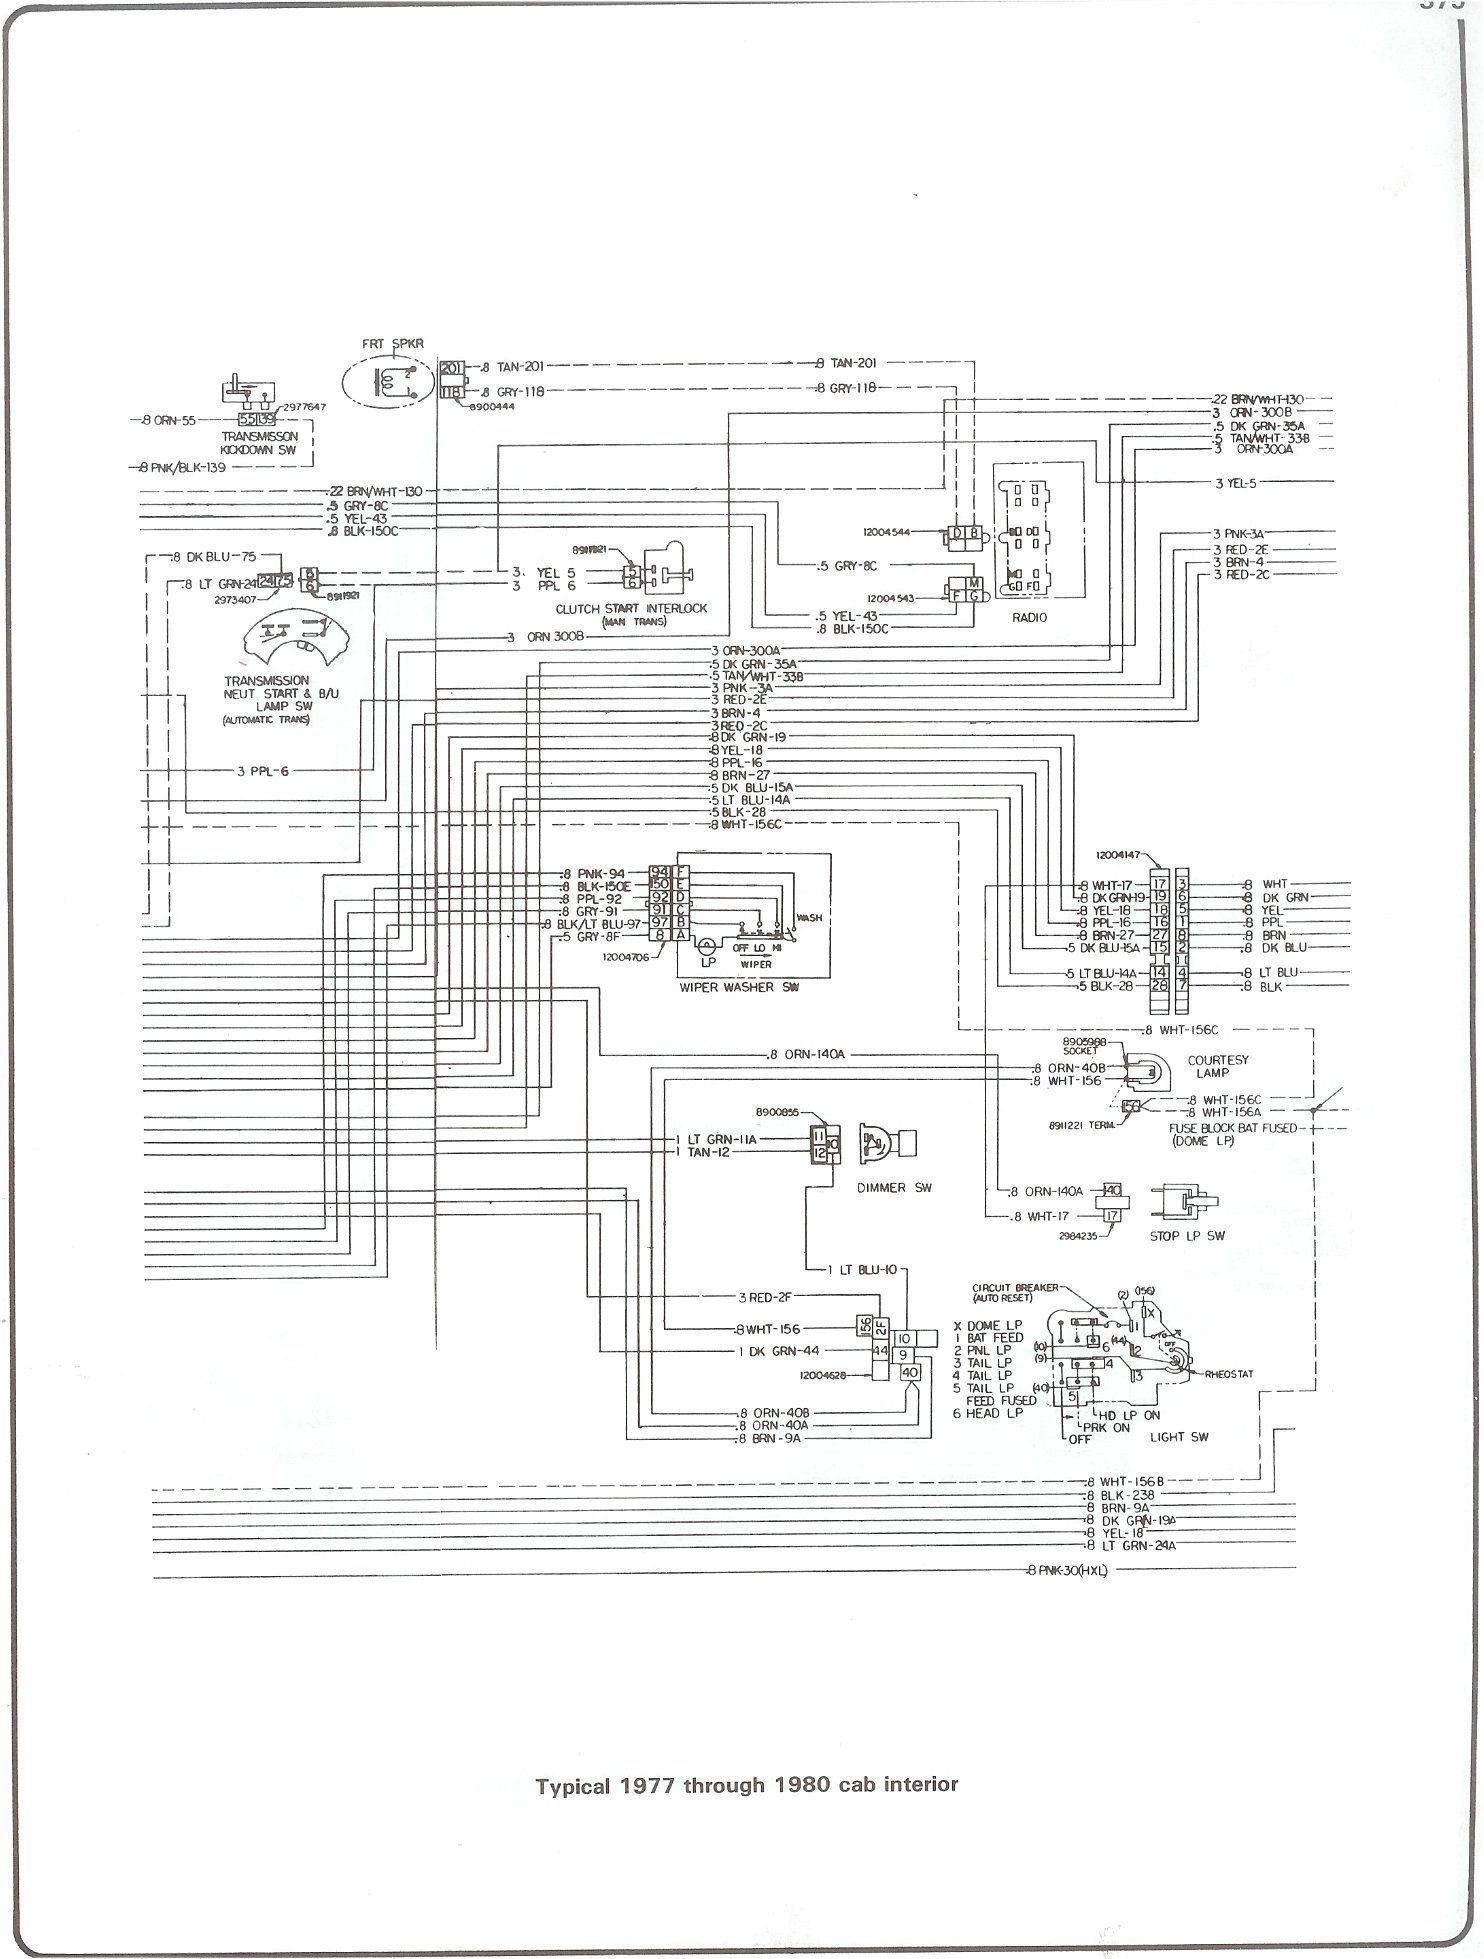 Plete 7387 Wiring Diagrams. 7780 Cab Interior. Chevrolet. 1978 Chevy Scottsdale Wiring Diagram At Scoala.co